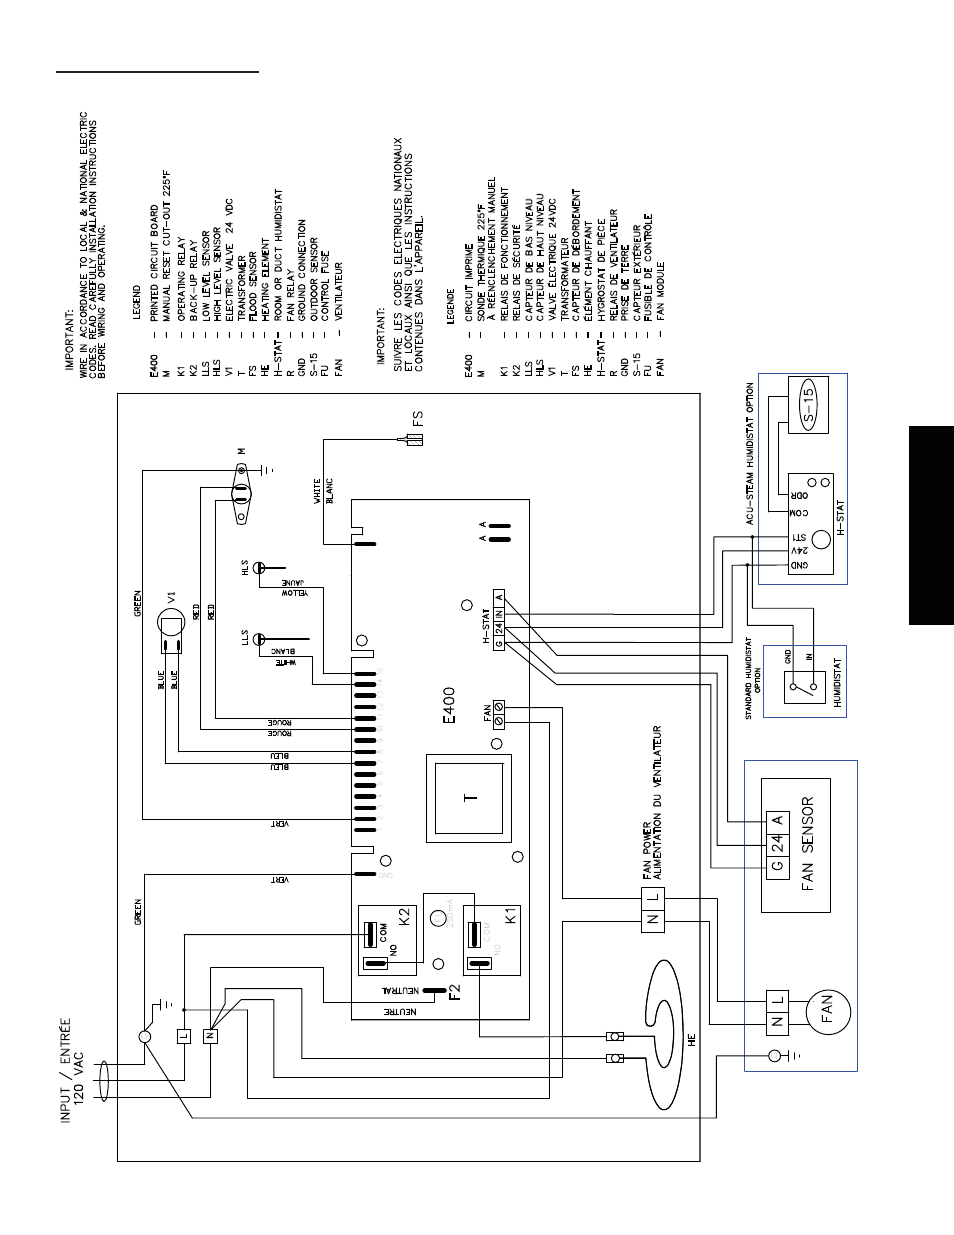 thermolec splitsteam page29?resize=665%2C861 markel duct heater wiring diagram electric baseboard thermostat indeeco duct heater wiring diagram at bayanpartner.co